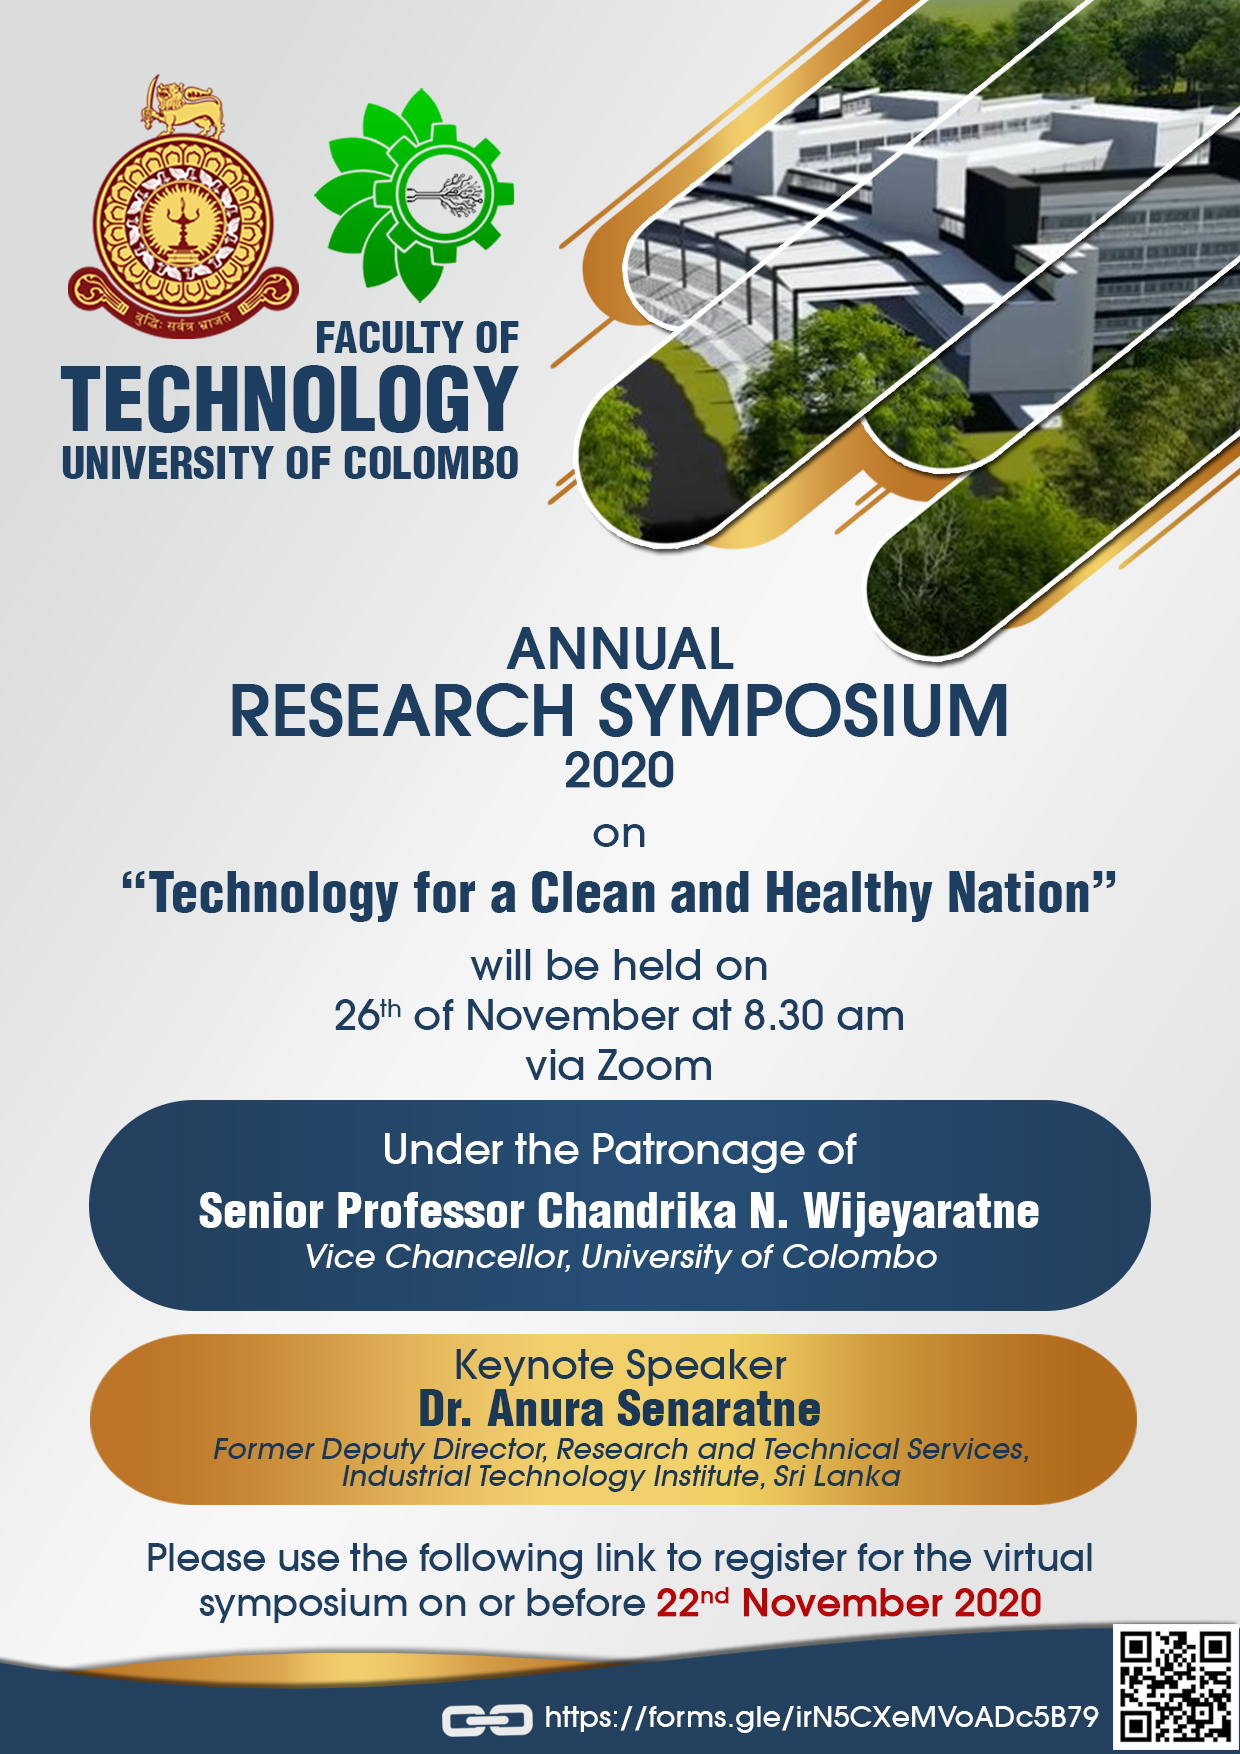 ANNUAL RESEARCH SYMPOSIUM 2020   FACULTY OF TECHNOLOGY